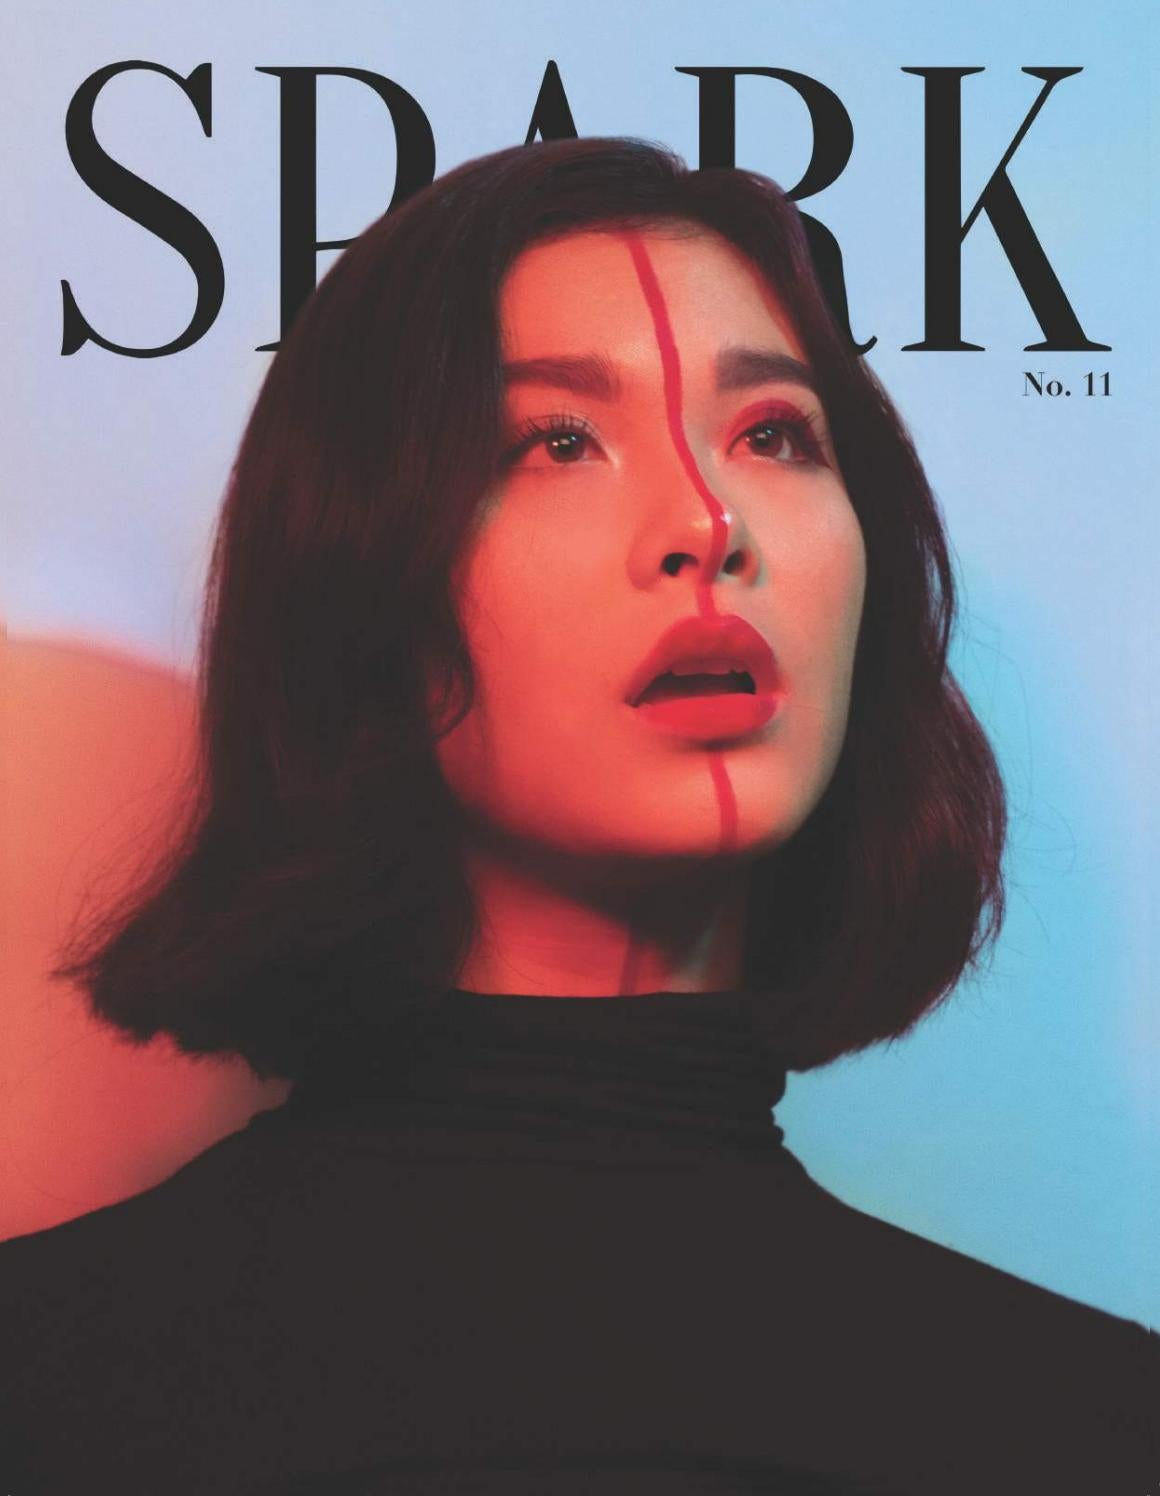 8019a8779 Spark Magazine No. 11: Elicit by Spark Magazine - issuu